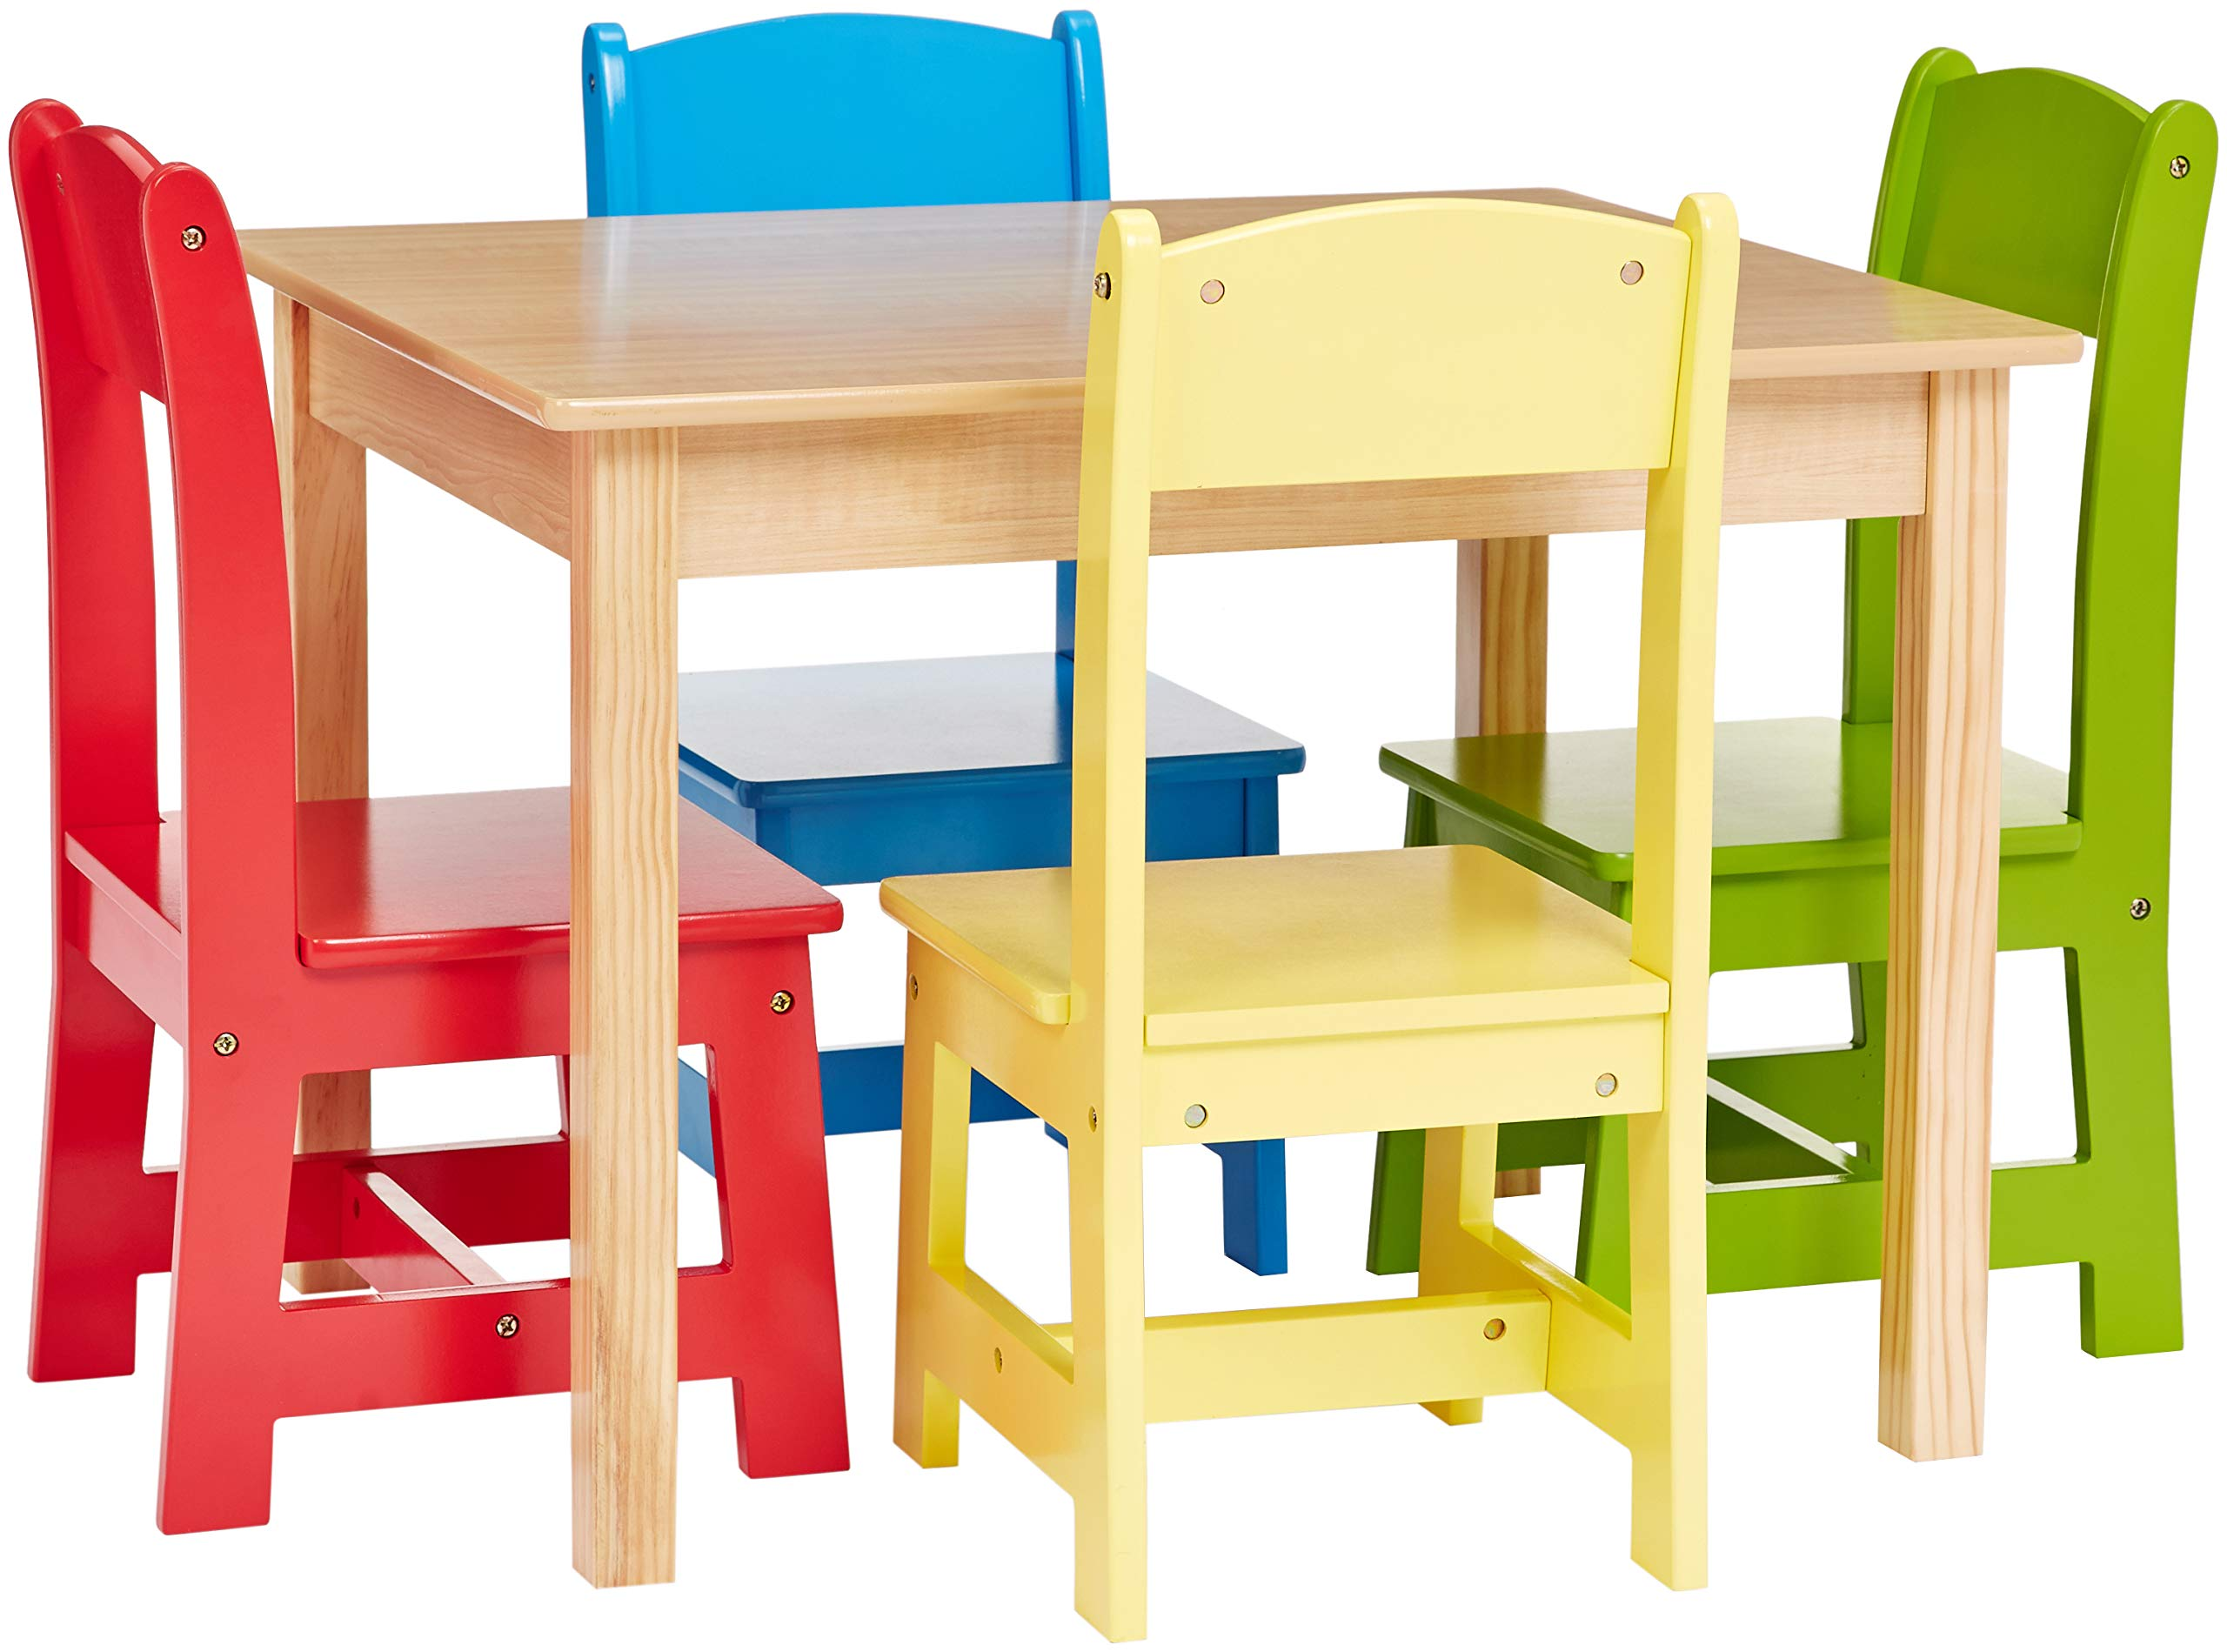 Phoenix Home AHV050402 Kid Table and Chair 26''x22''x19'' 10''x10''x22''(H), Green/Yellow/Red/Blue/Natural Wood